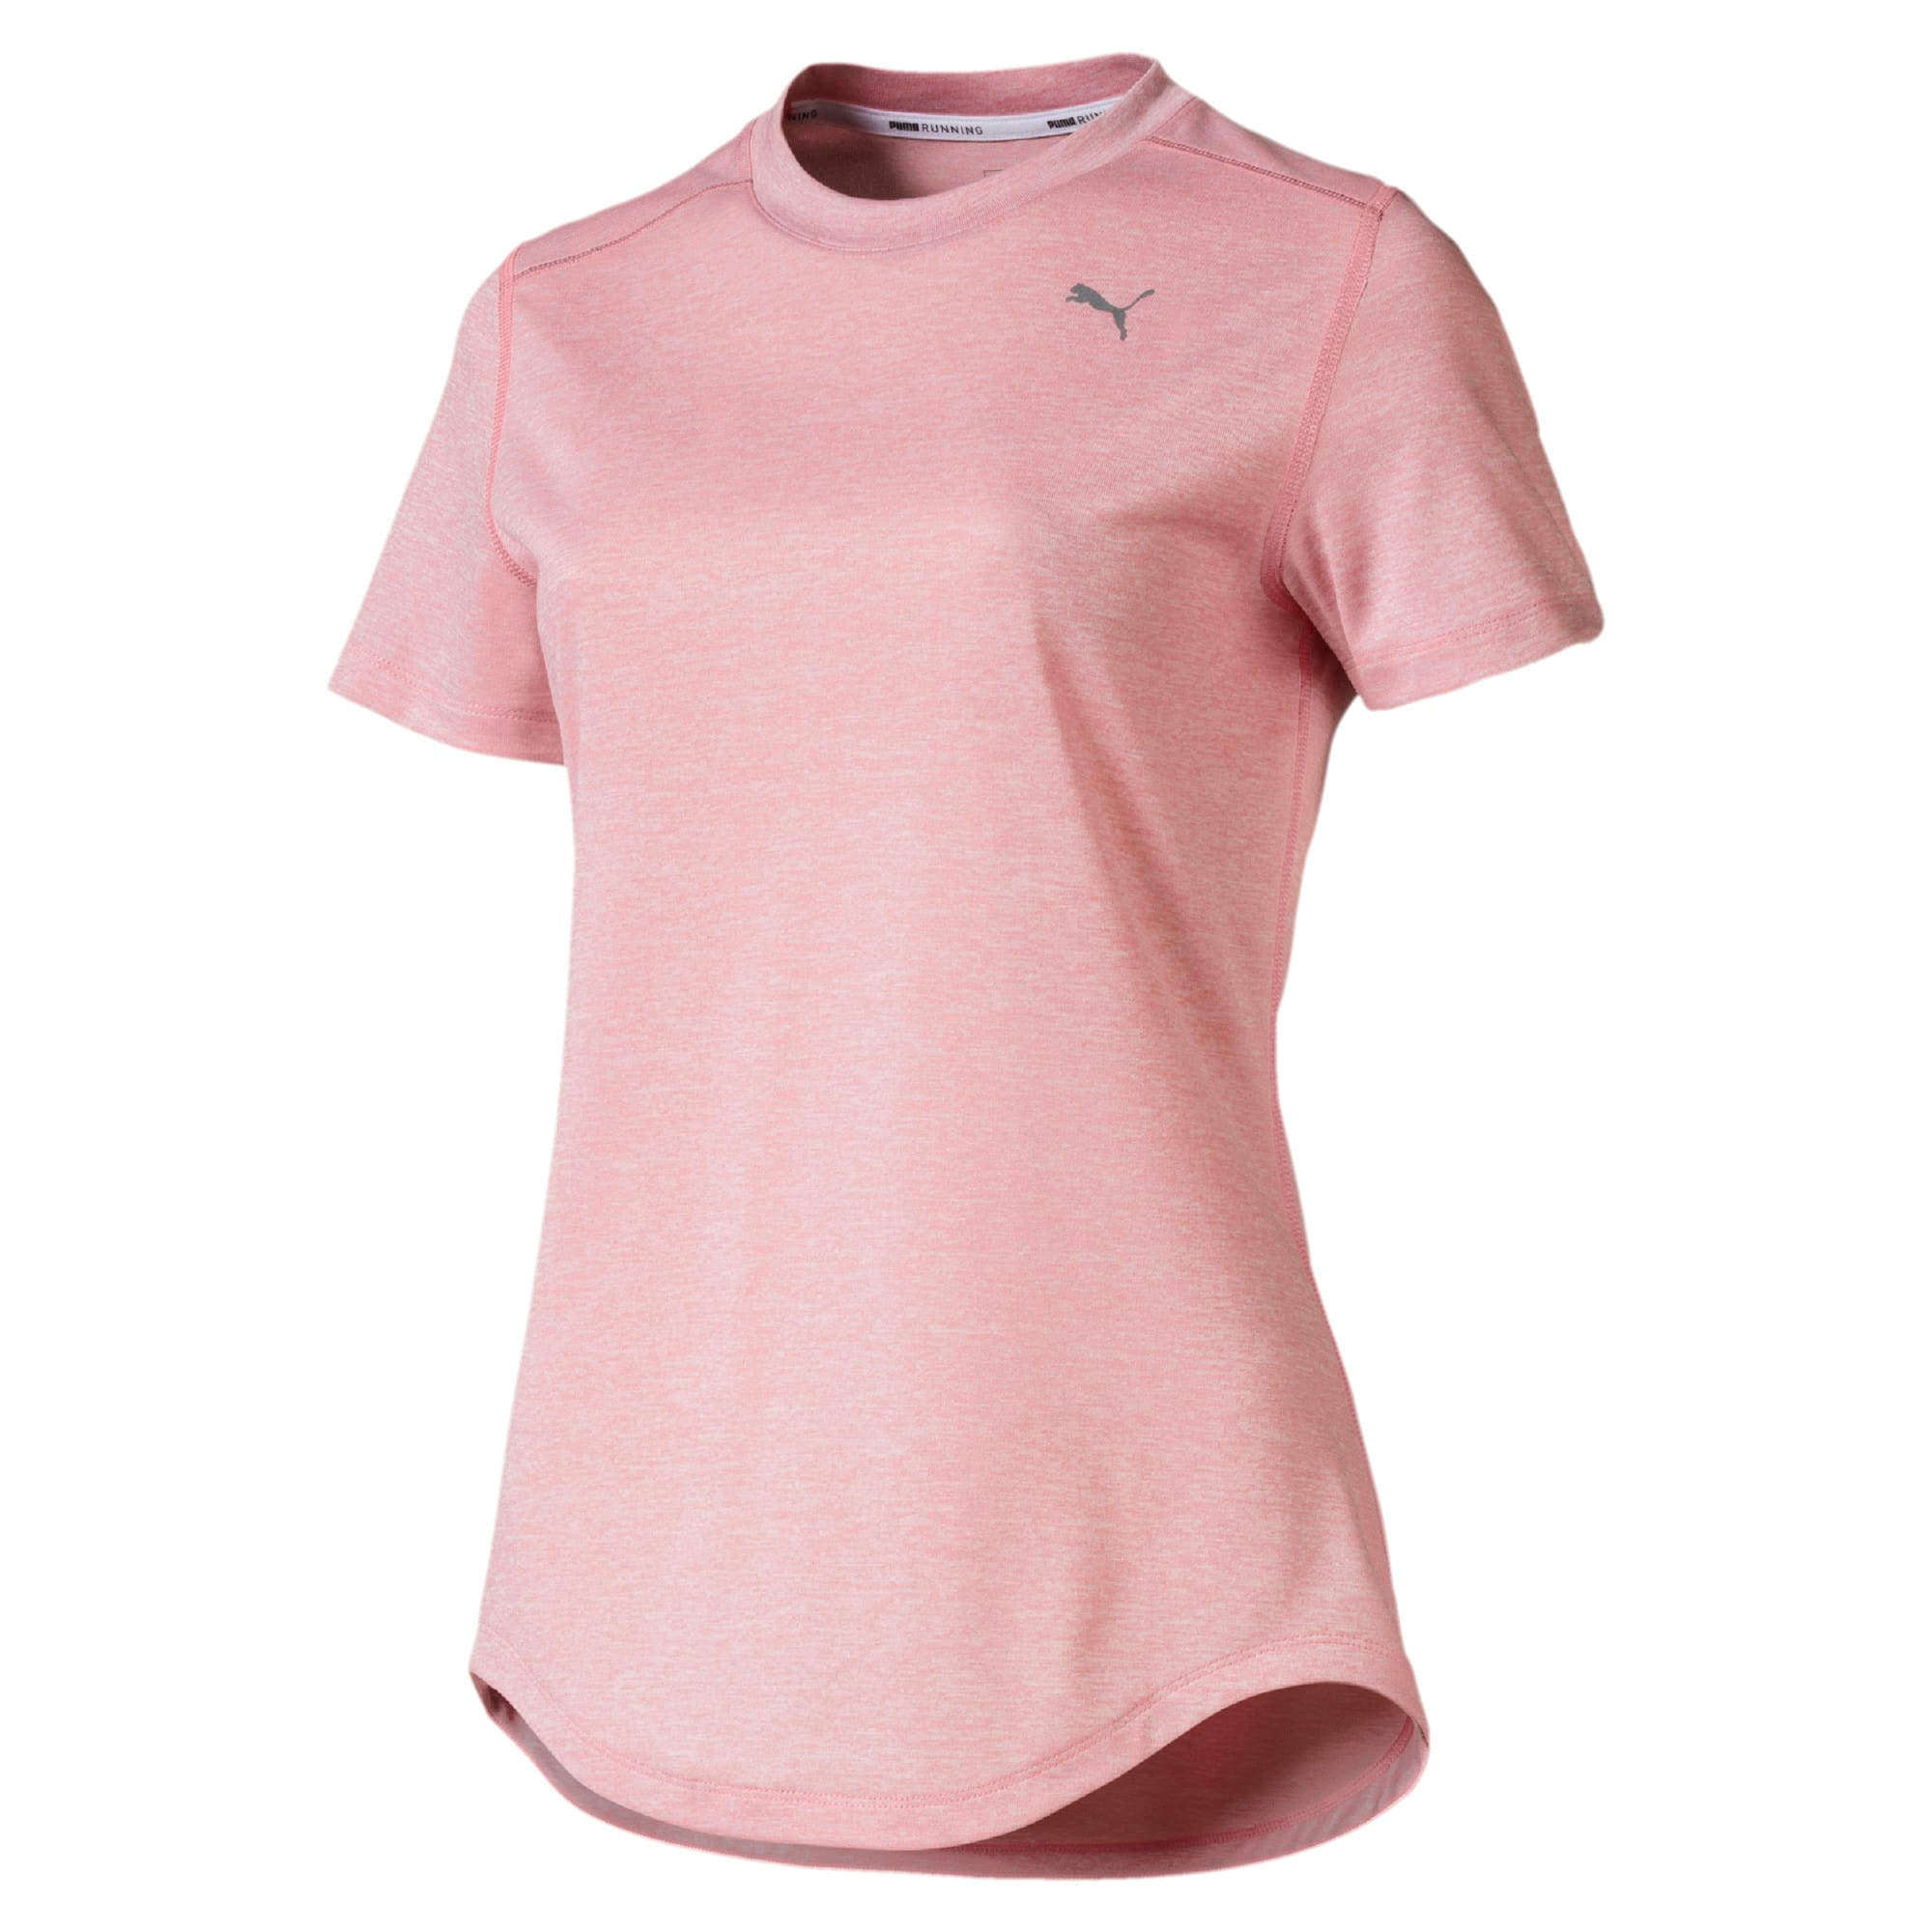 IGNITE Heather Women's Tee, Bridal Rose Heather, large-IND